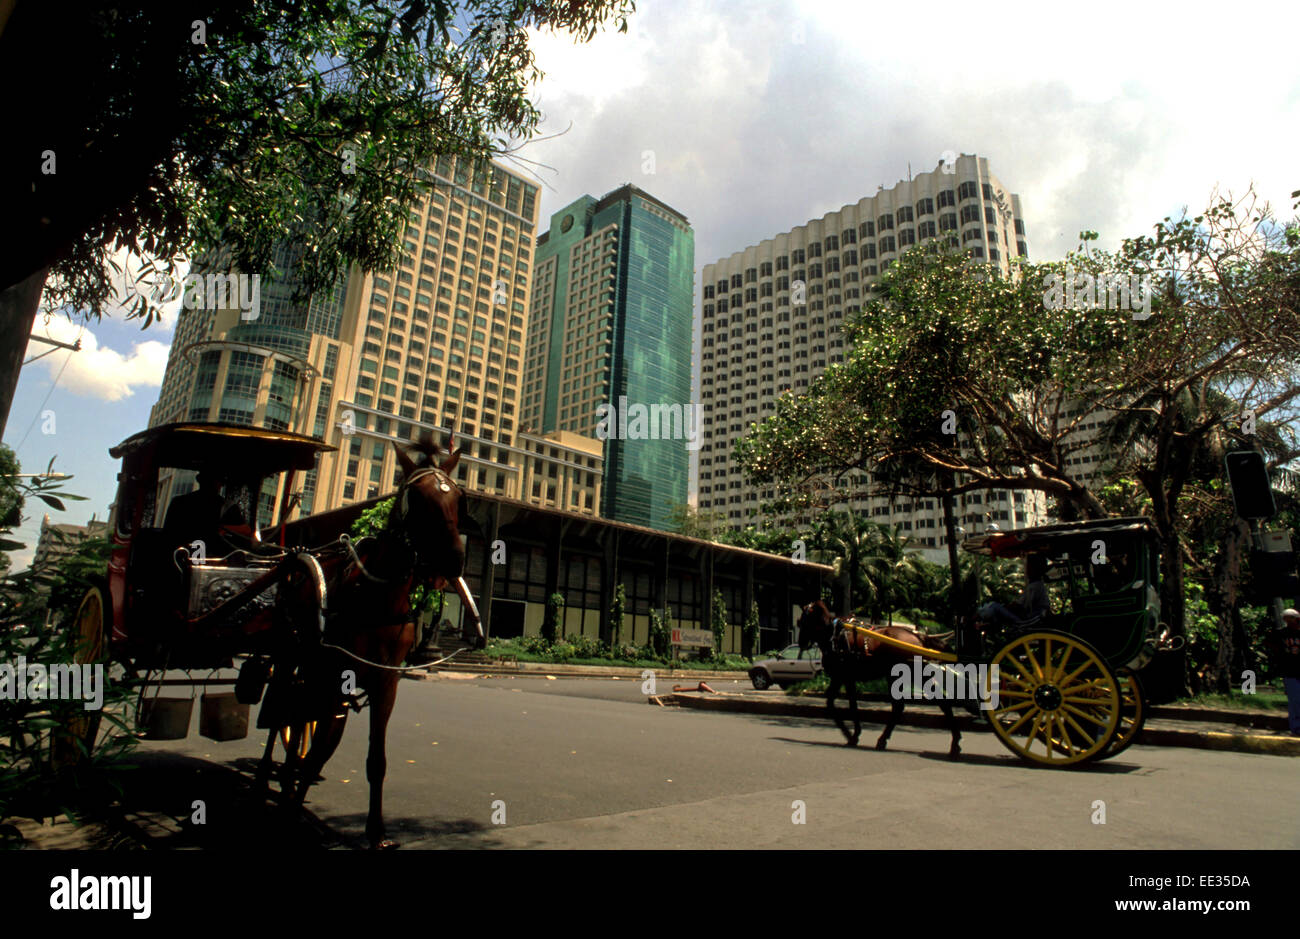 Kalesa ride, buggy horse carriage and large hotels in Malate. Manila. Philippines. Malate is an old district of - Stock Image